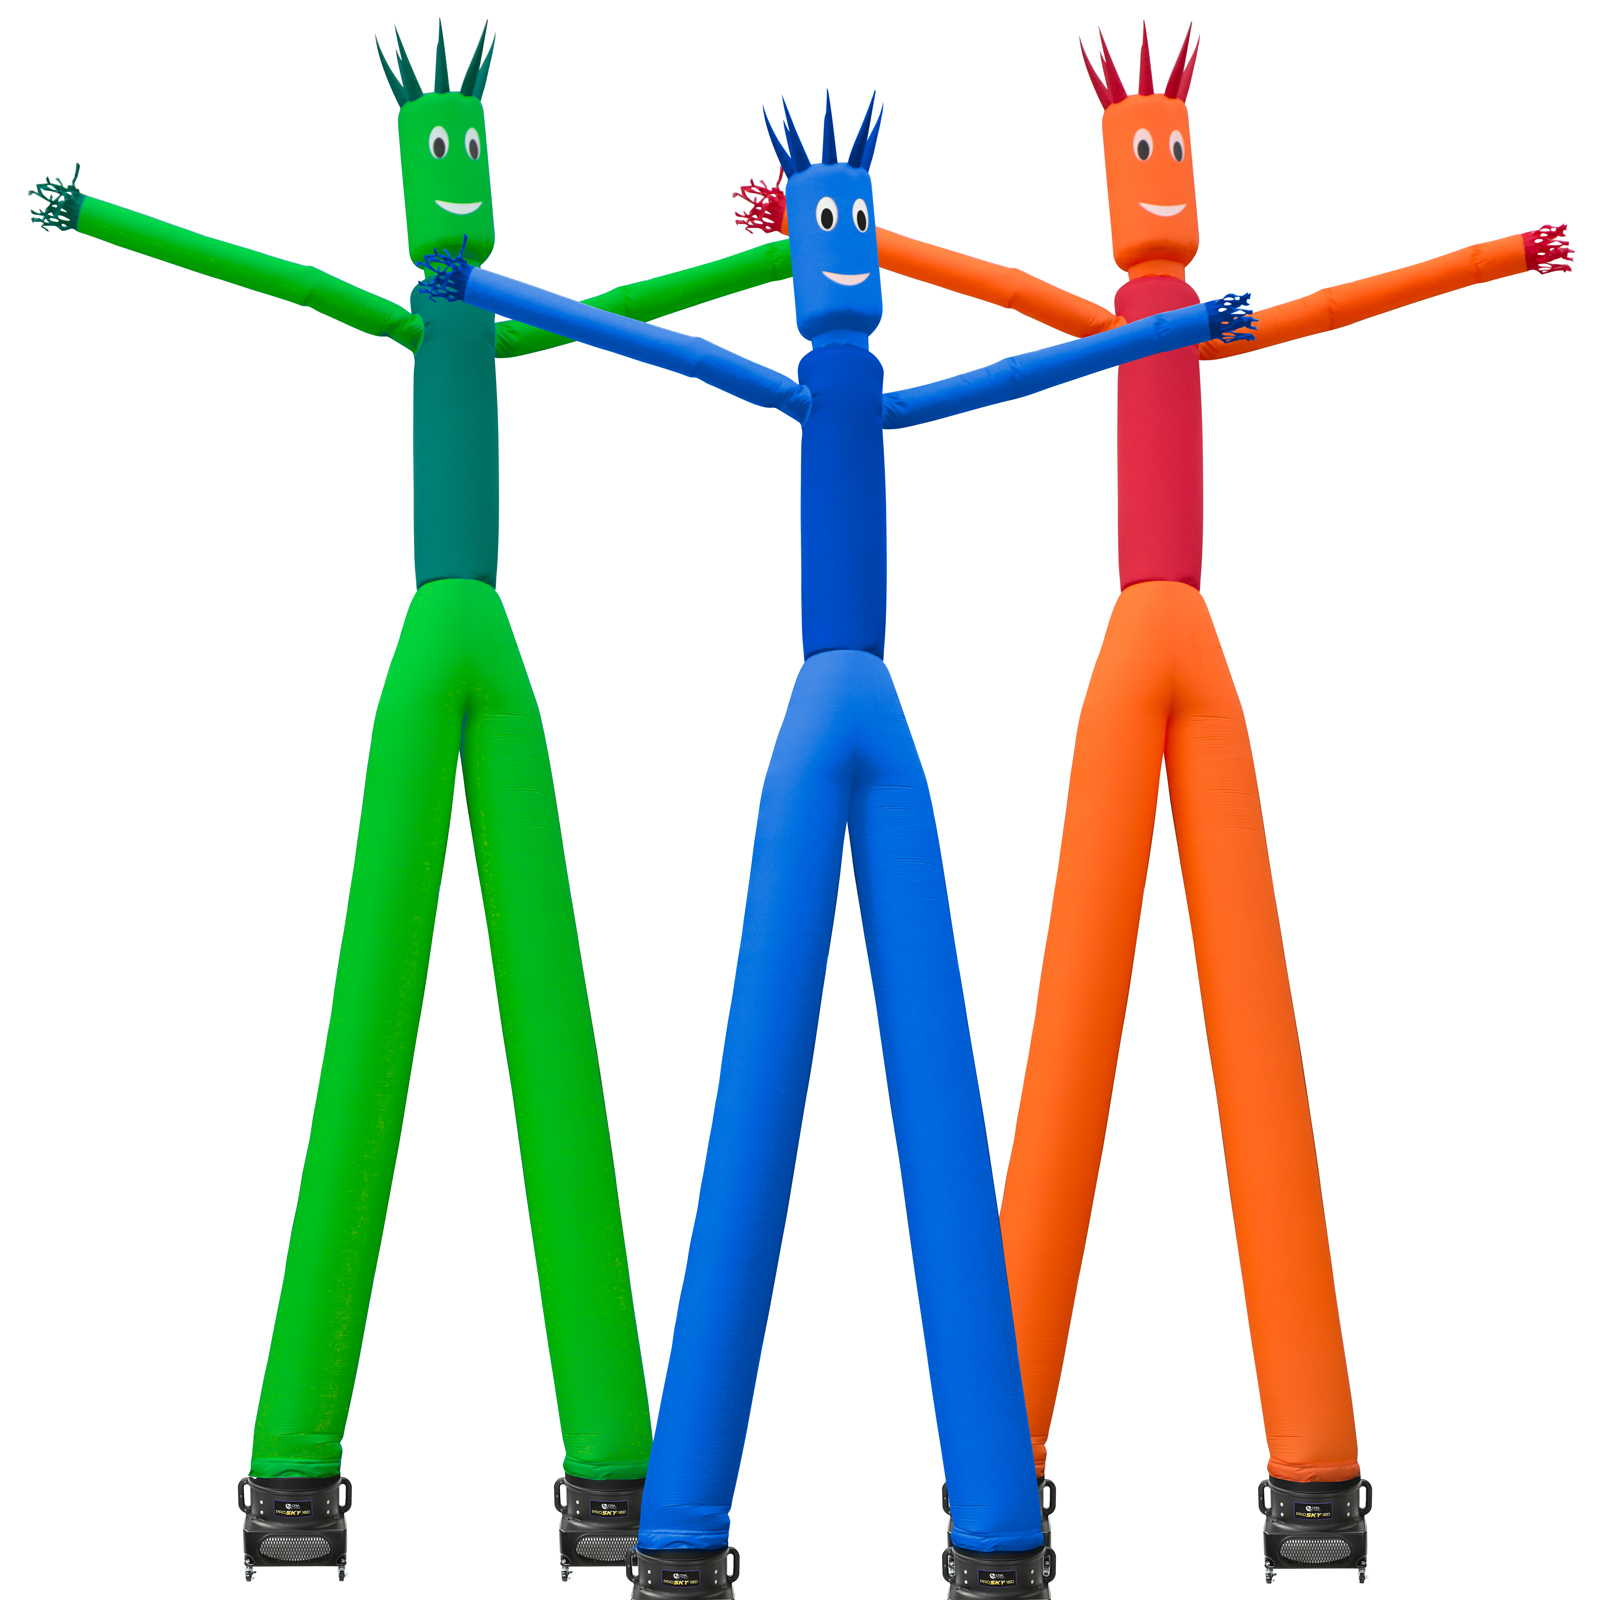 Inflatable HQ 26 ft. Tall Air Inflatable Dancer Tube Puppet Set with Blower Fan - Multiple Colors Available